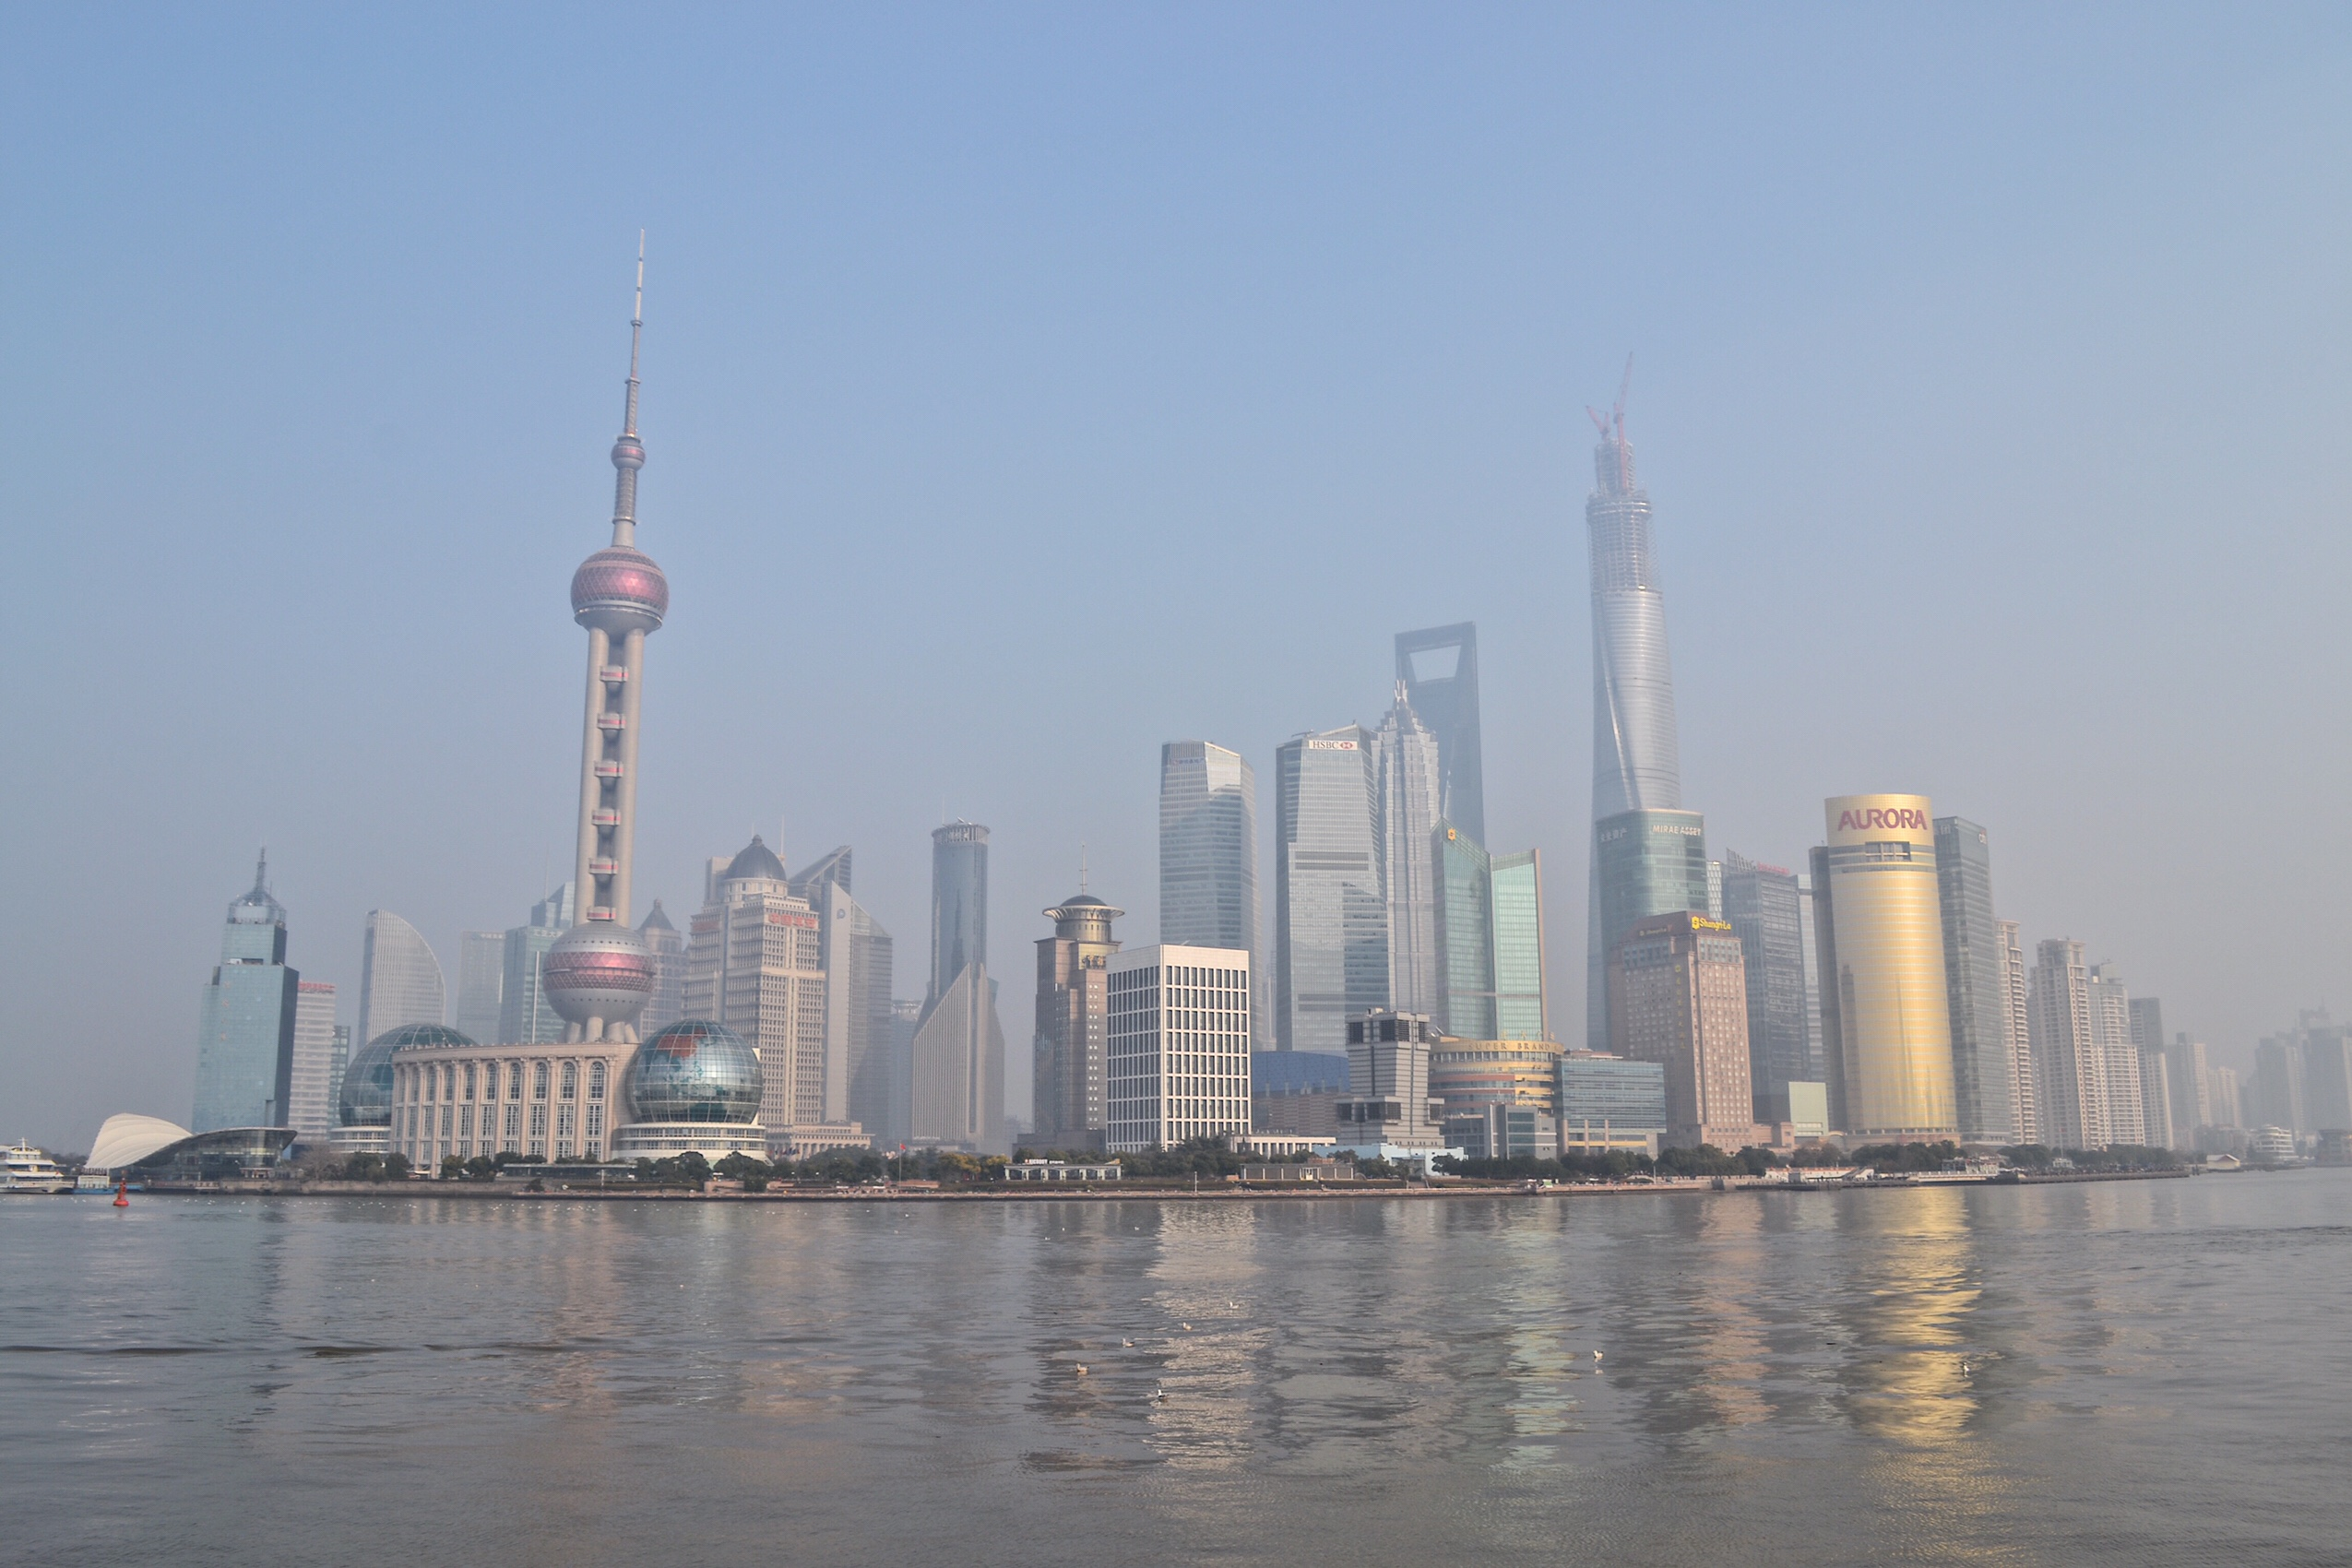 image of the bund in Shanghai in China